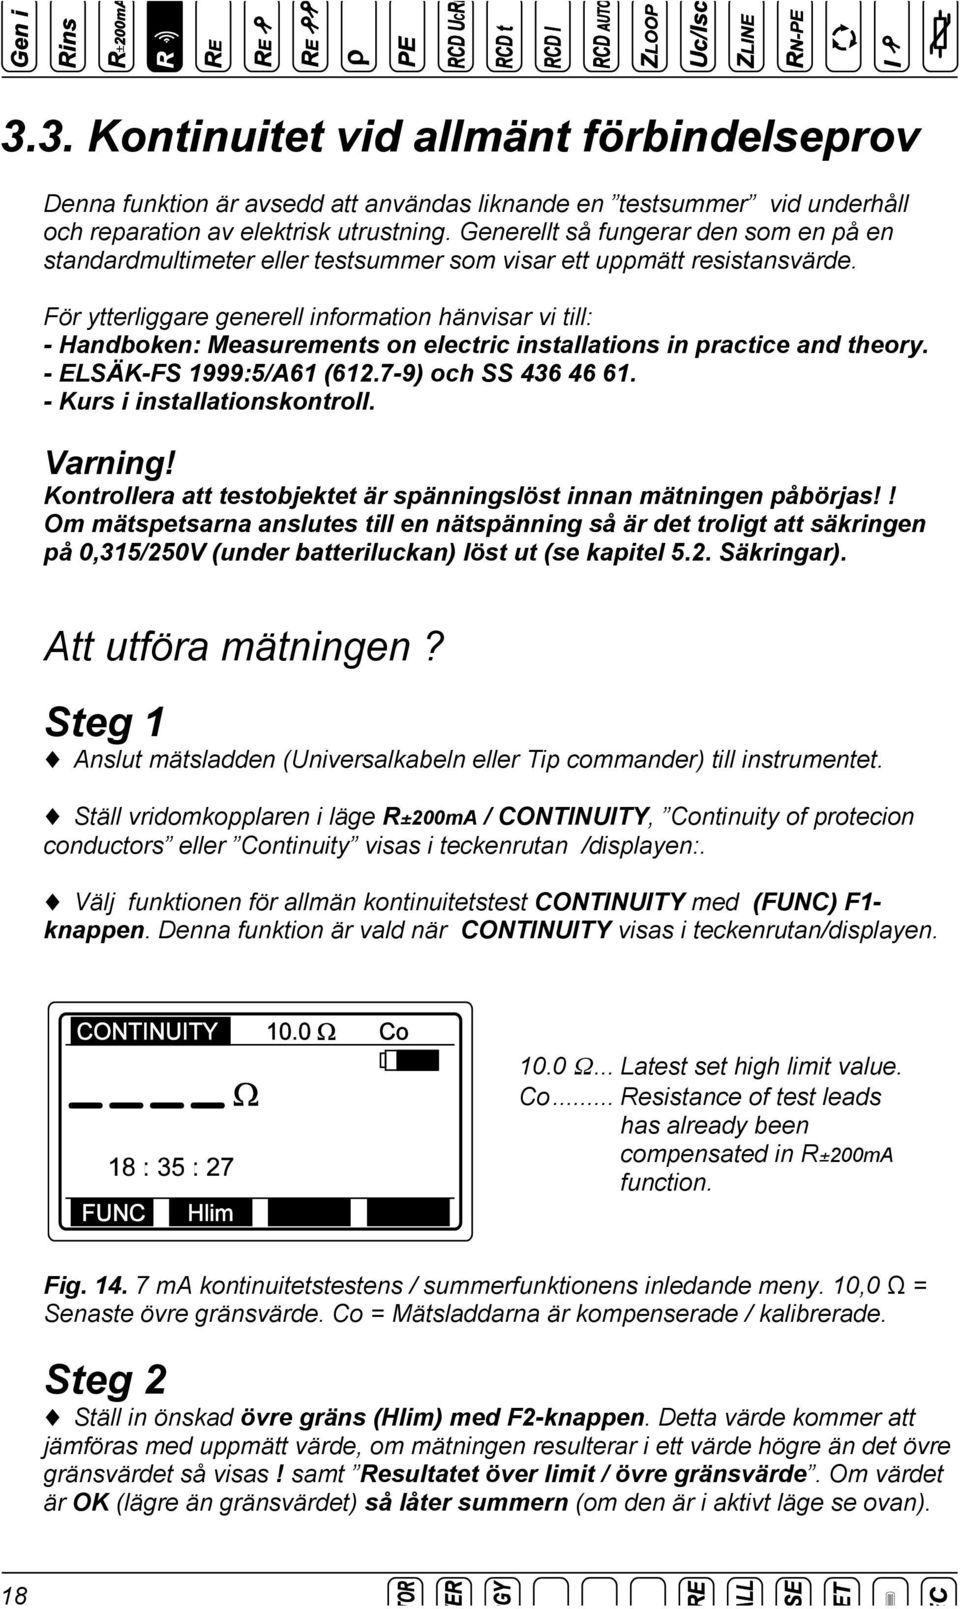 För ytterliggare generell information hänvisar vi till: - Handboken: Measurements on electric installations in practice and theory. - ELSÄK-FS 1999:5/A61 (612.7-9) och SS 436 46 61.